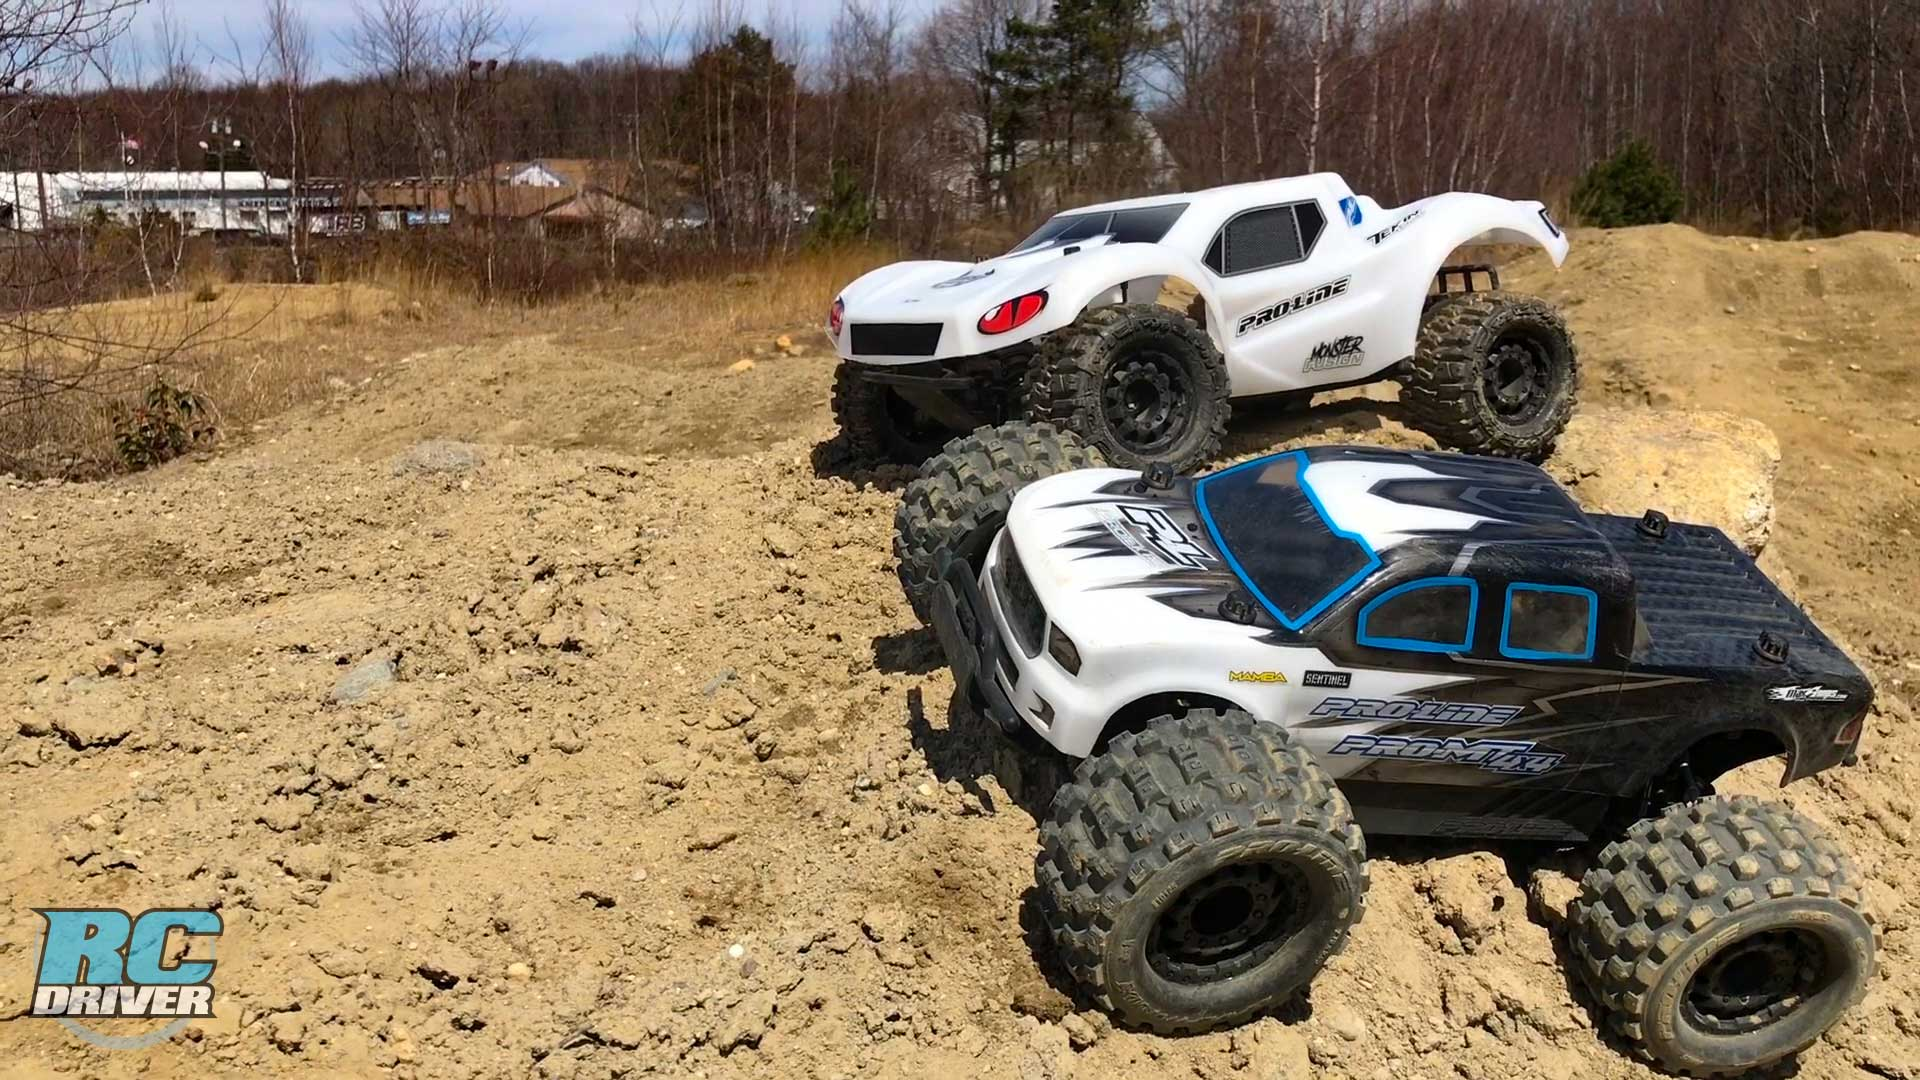 Play Time With The Pro-Line Racing Pro-MT 4x4 & Pro-Fusion SC 4x4